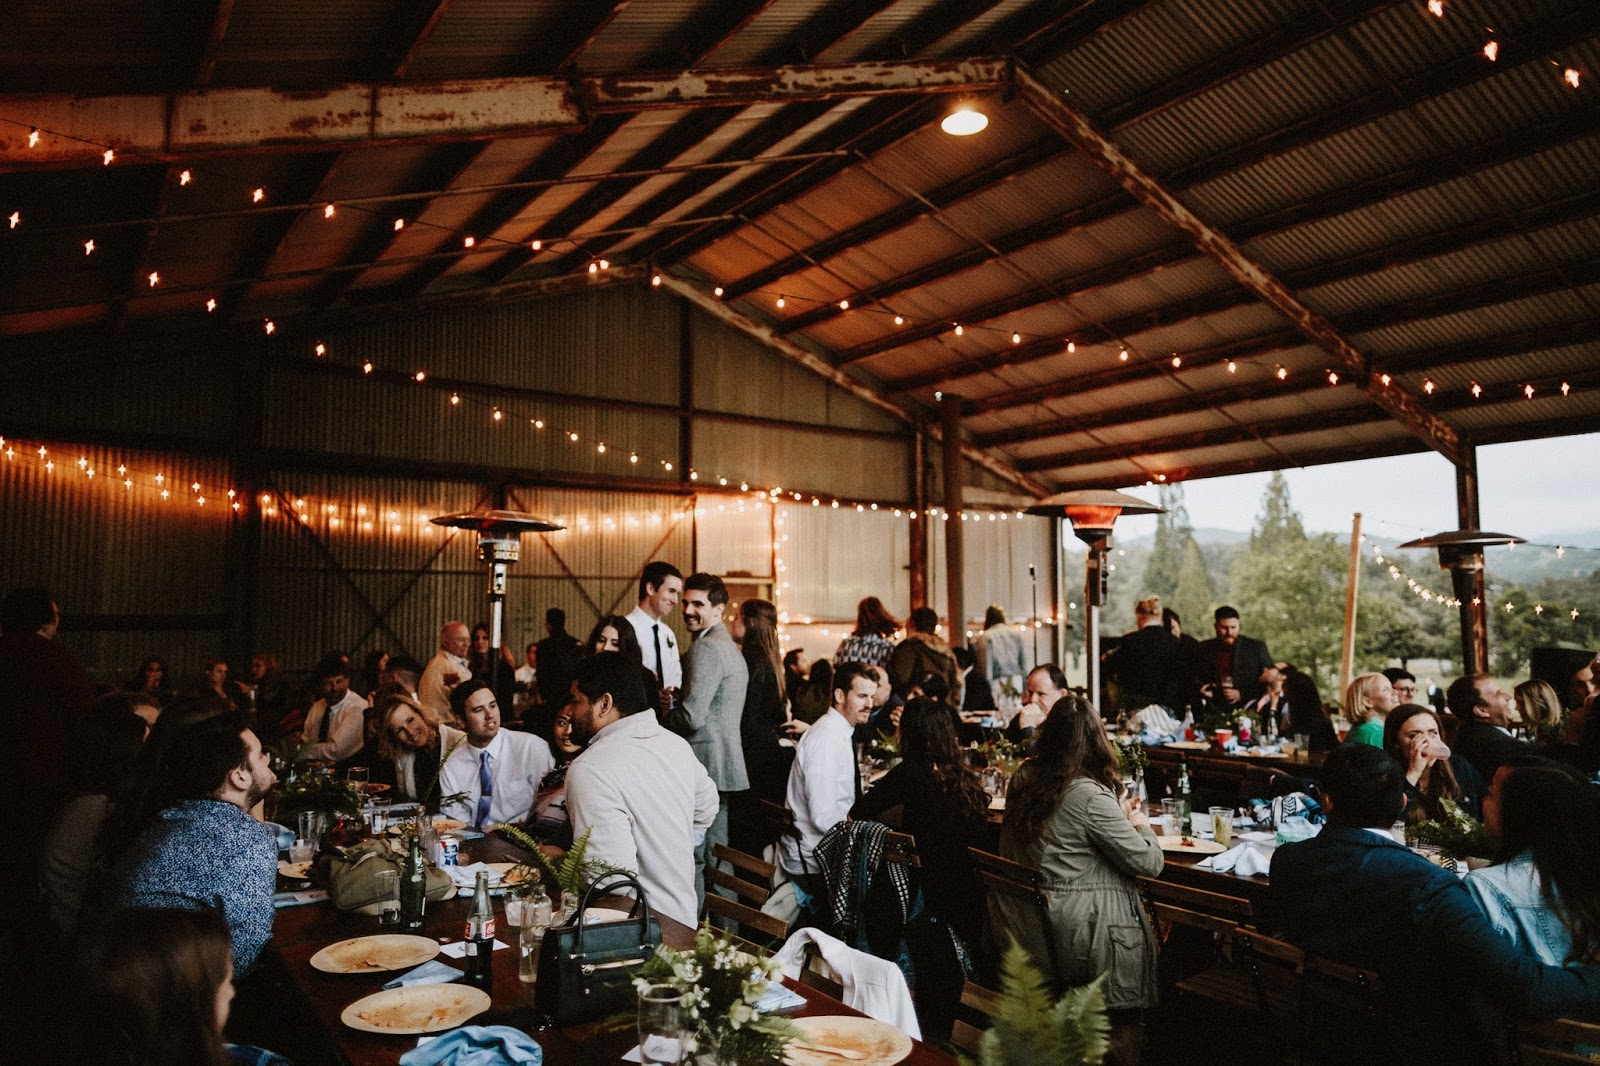 Congratulations On Your Upcoming Wedding Julian Station Offers An Affordable And Unique Location For Special Day Imagine Having Ceremony